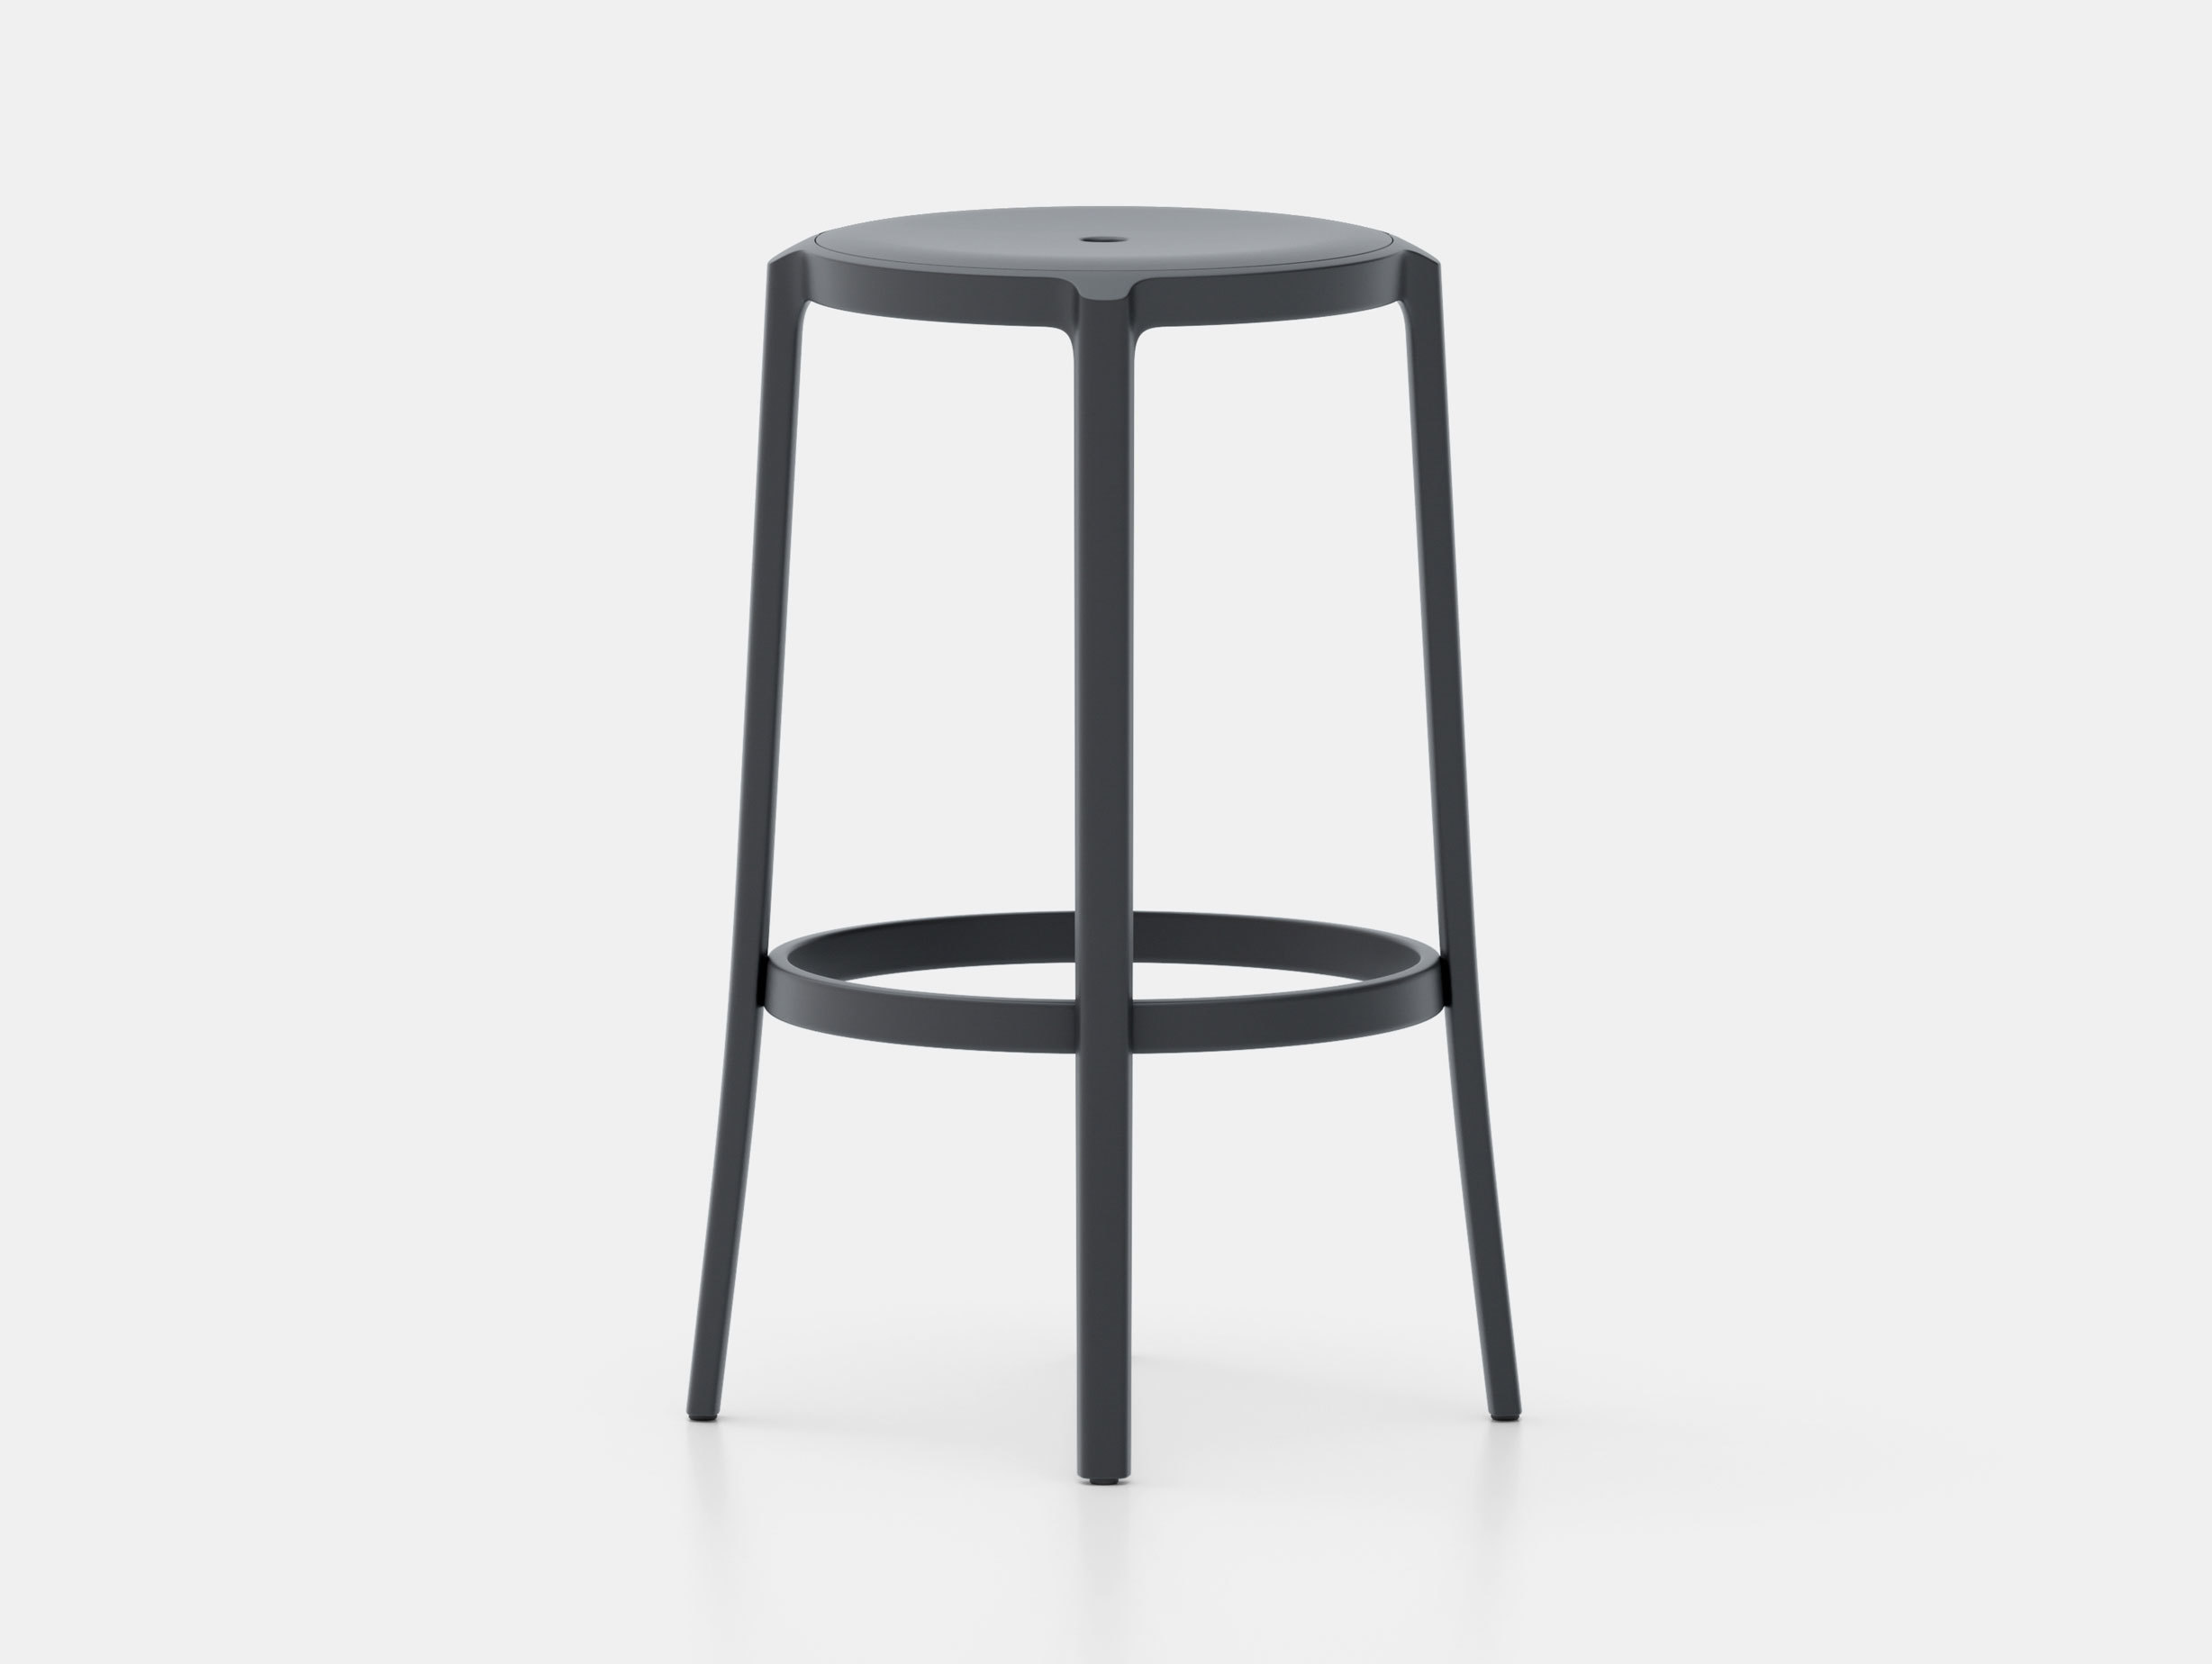 Pleasant On On Stool Caraccident5 Cool Chair Designs And Ideas Caraccident5Info